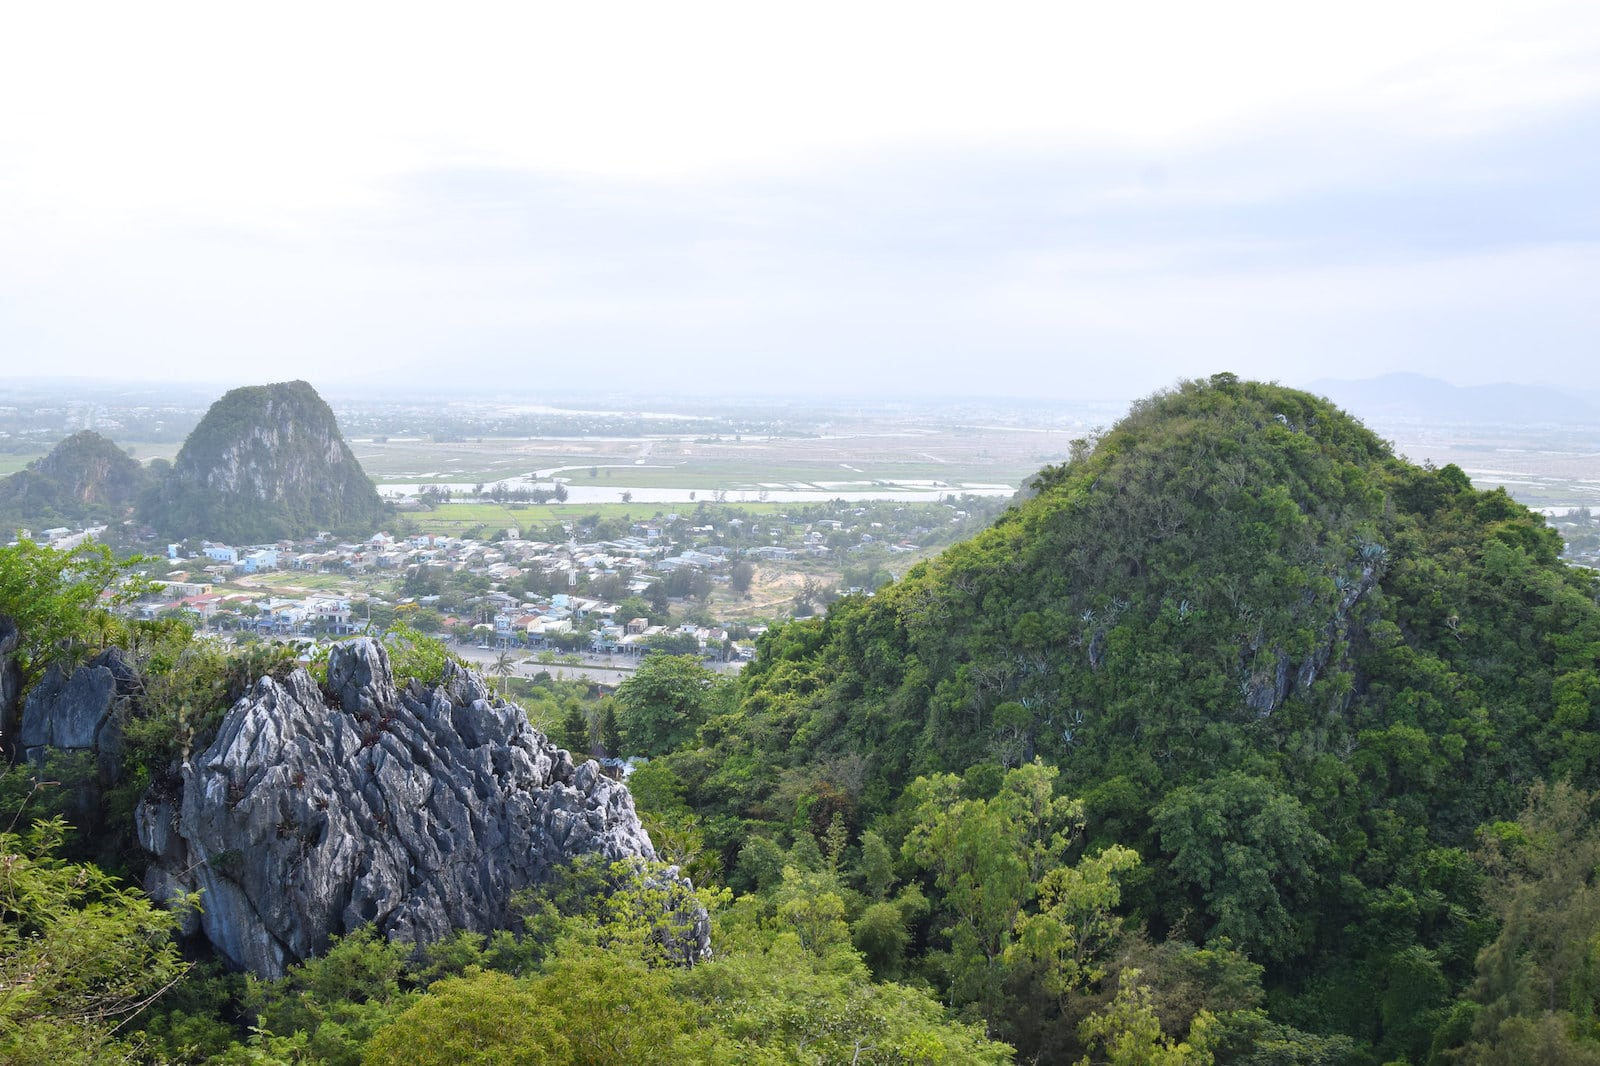 Image of the view from the Marble Mountains in Danang, Vietnam